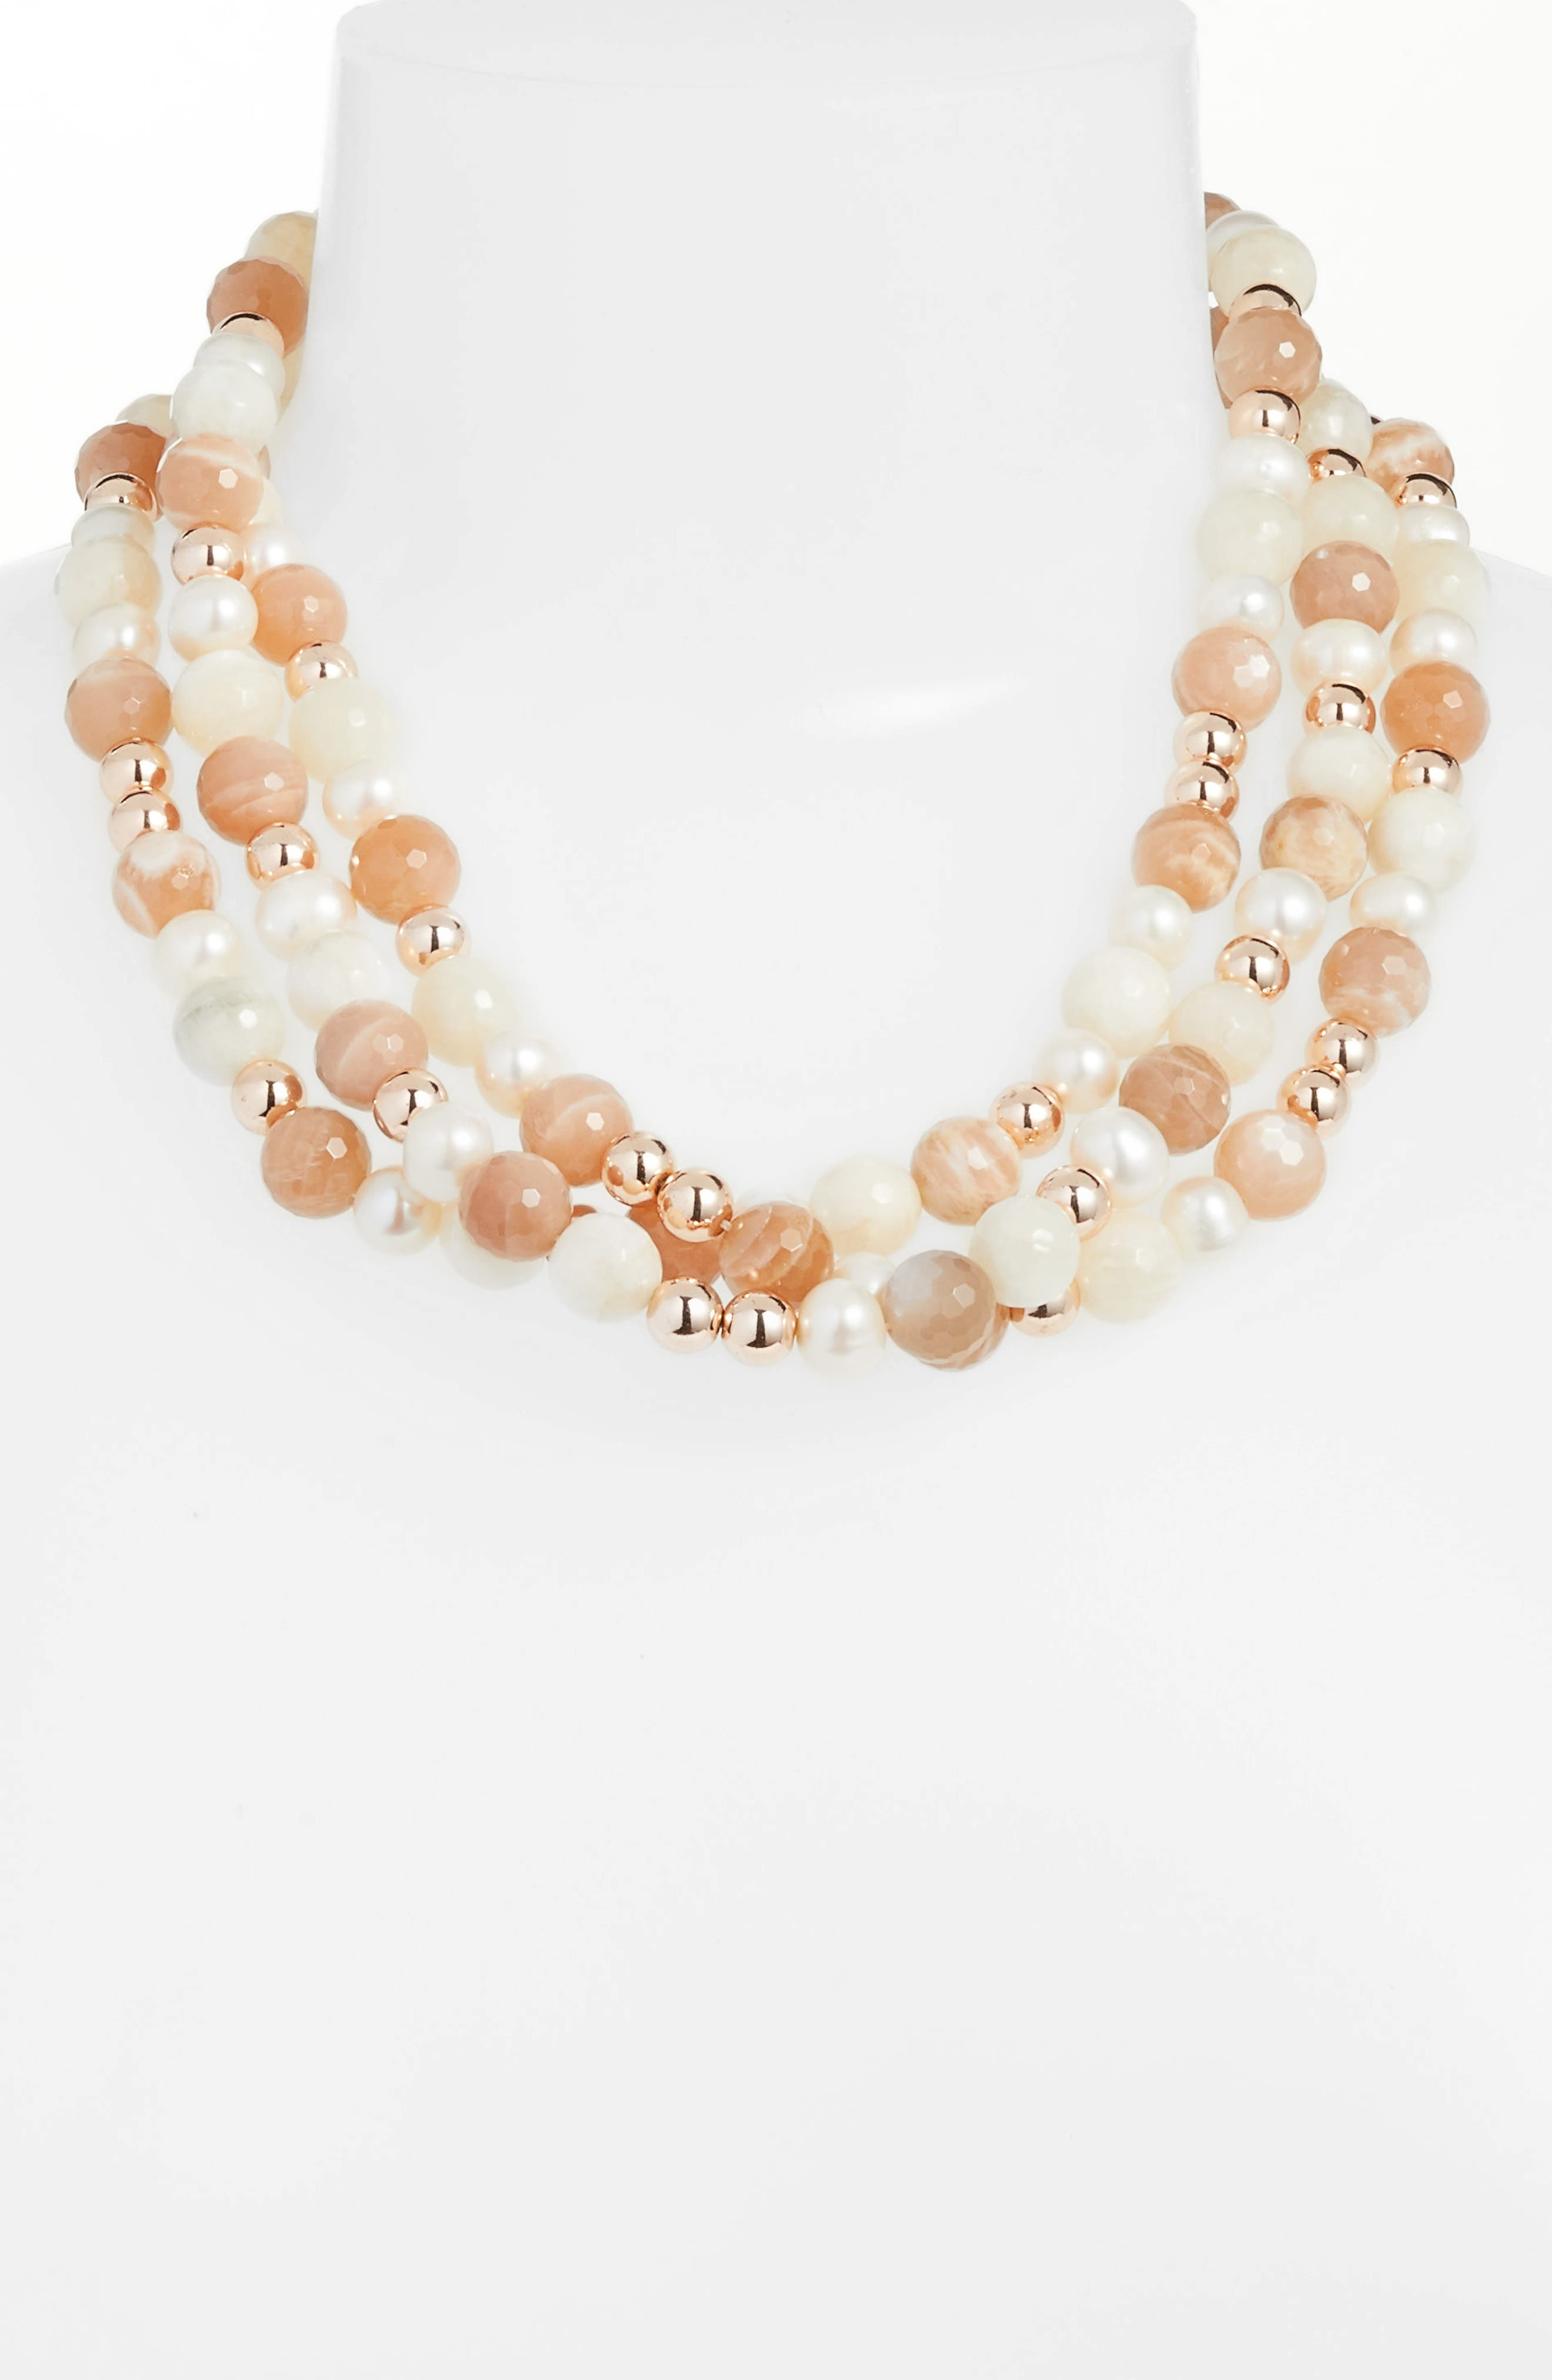 Pearl & Stone Necklace,                             Main thumbnail 1, color,                             Pink/ White/ Silver